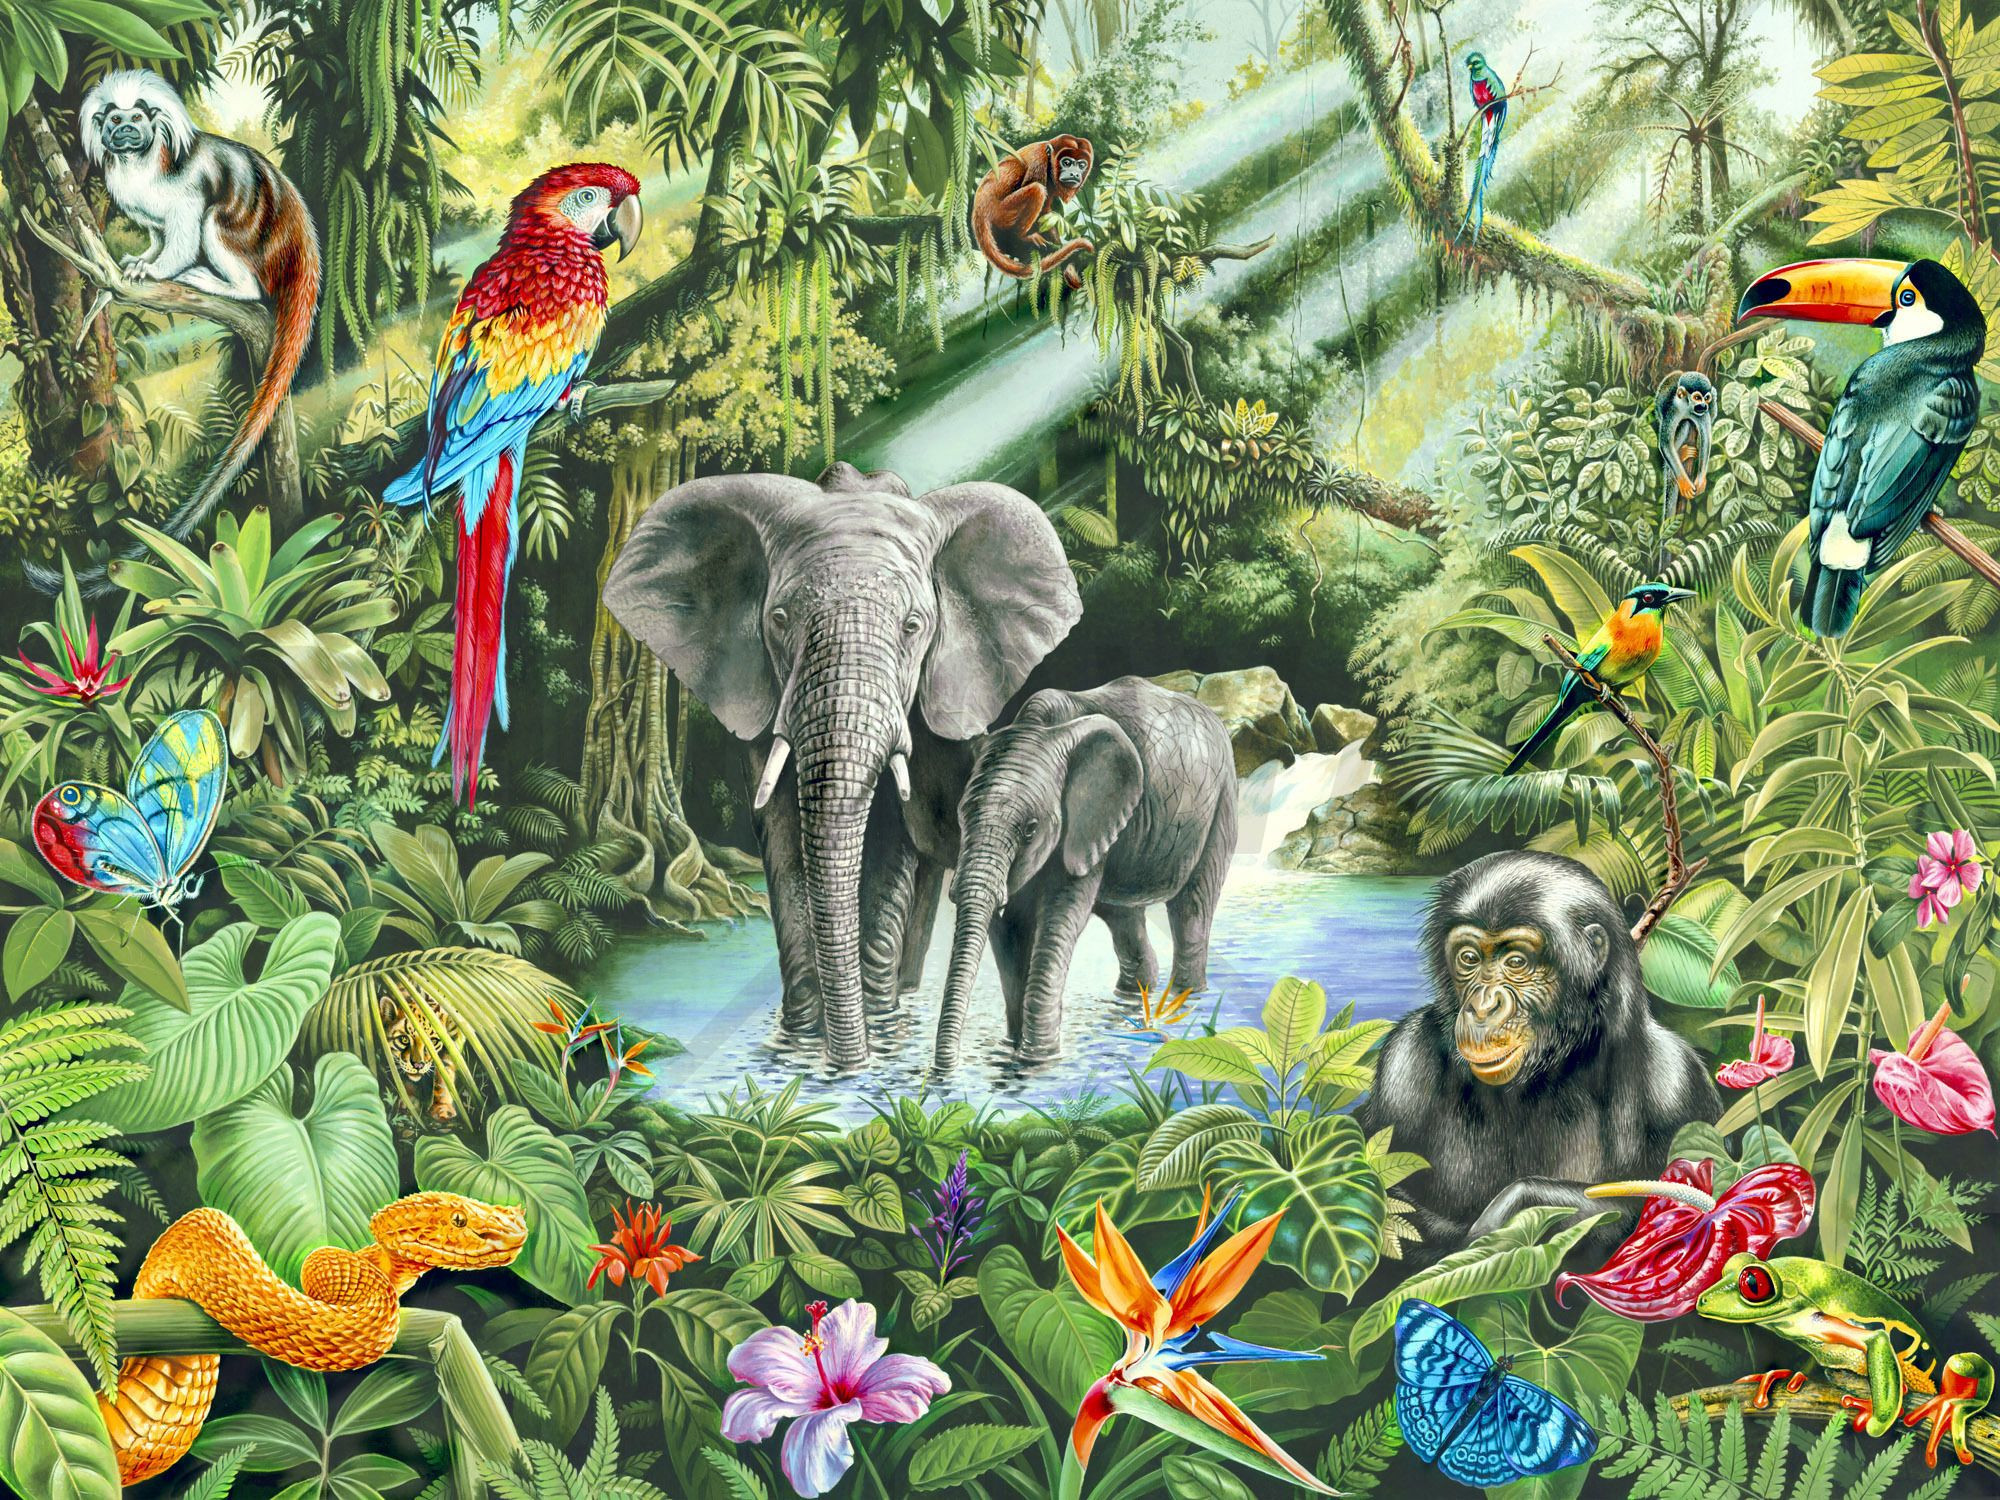 2000x1500 Animal Mural Wallpaper Incredible Jungle Wall Mural & Wallpaper Wall